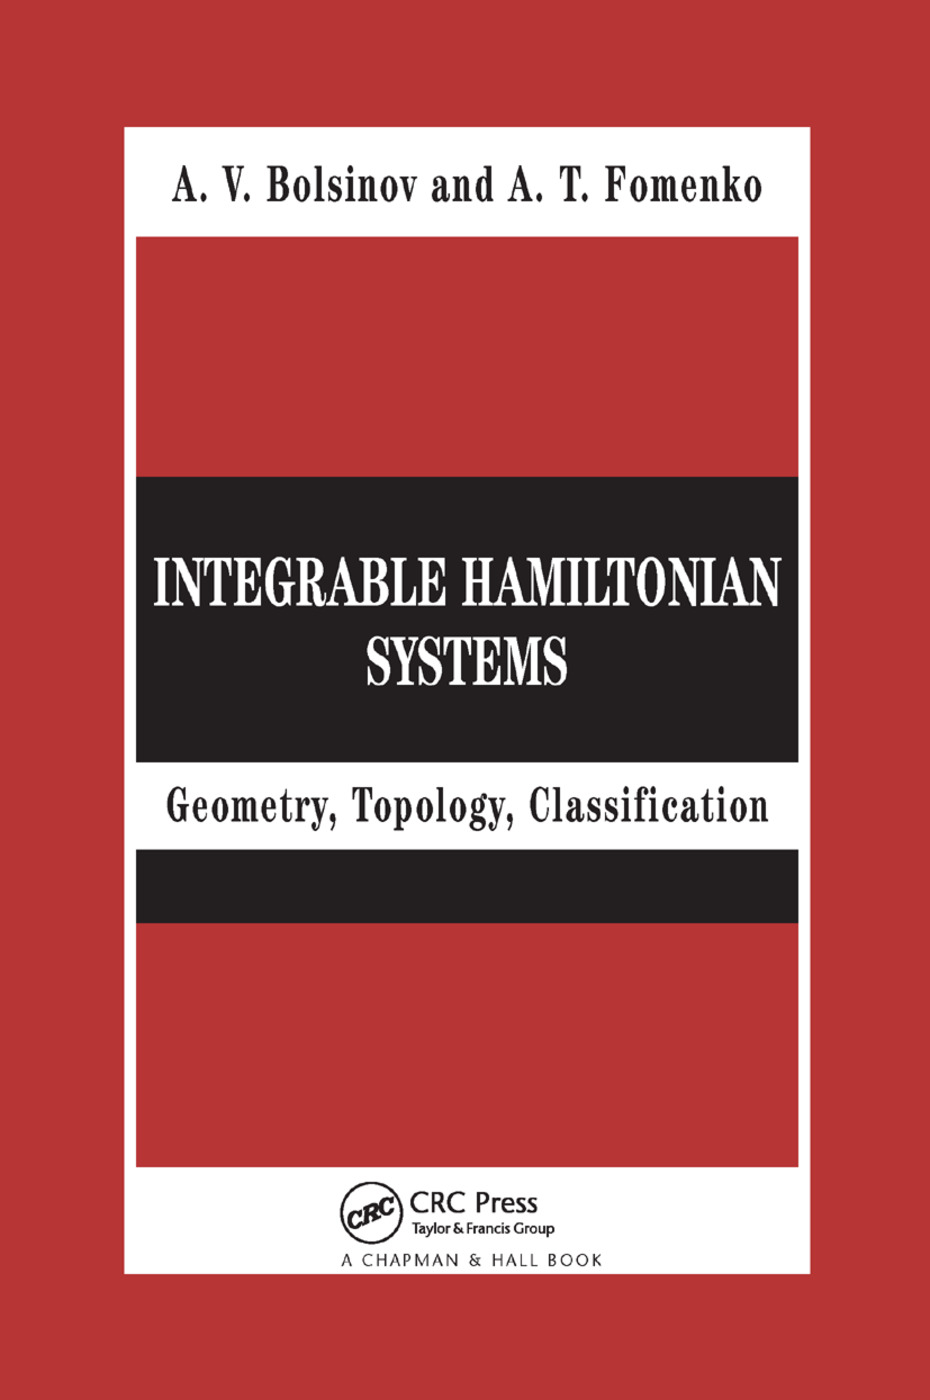 Integrable Hamiltonian Systems: Geometry, Topology, Classification, 1st Edition (Paperback) book cover